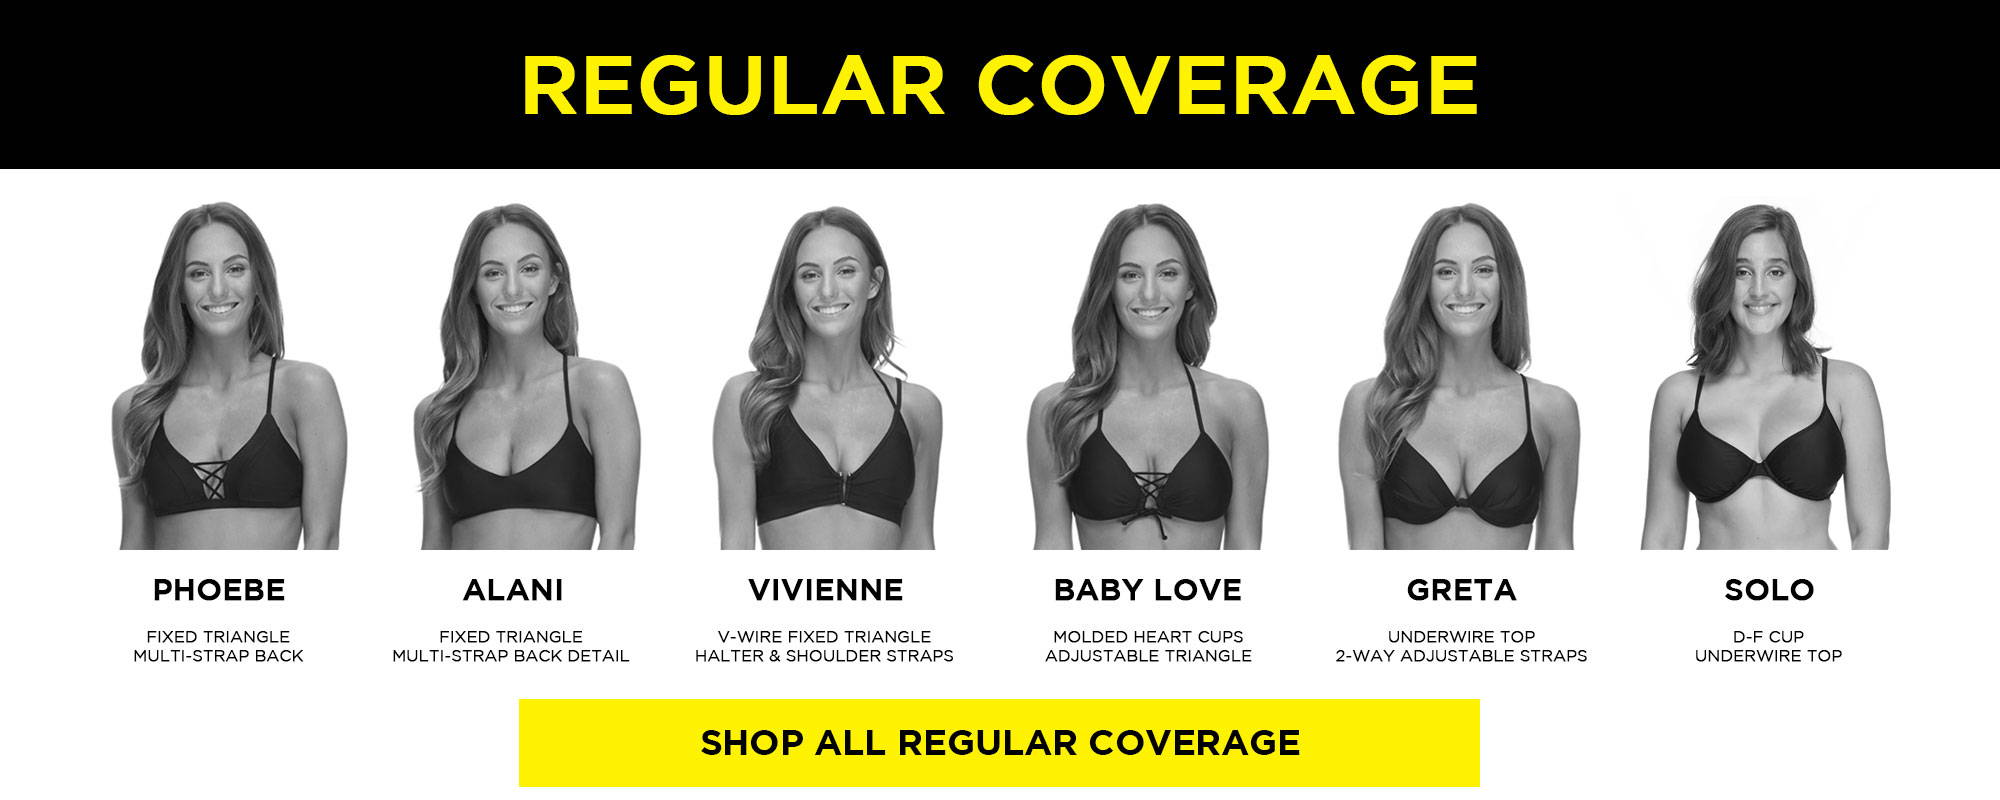 Regular Coverage Tops